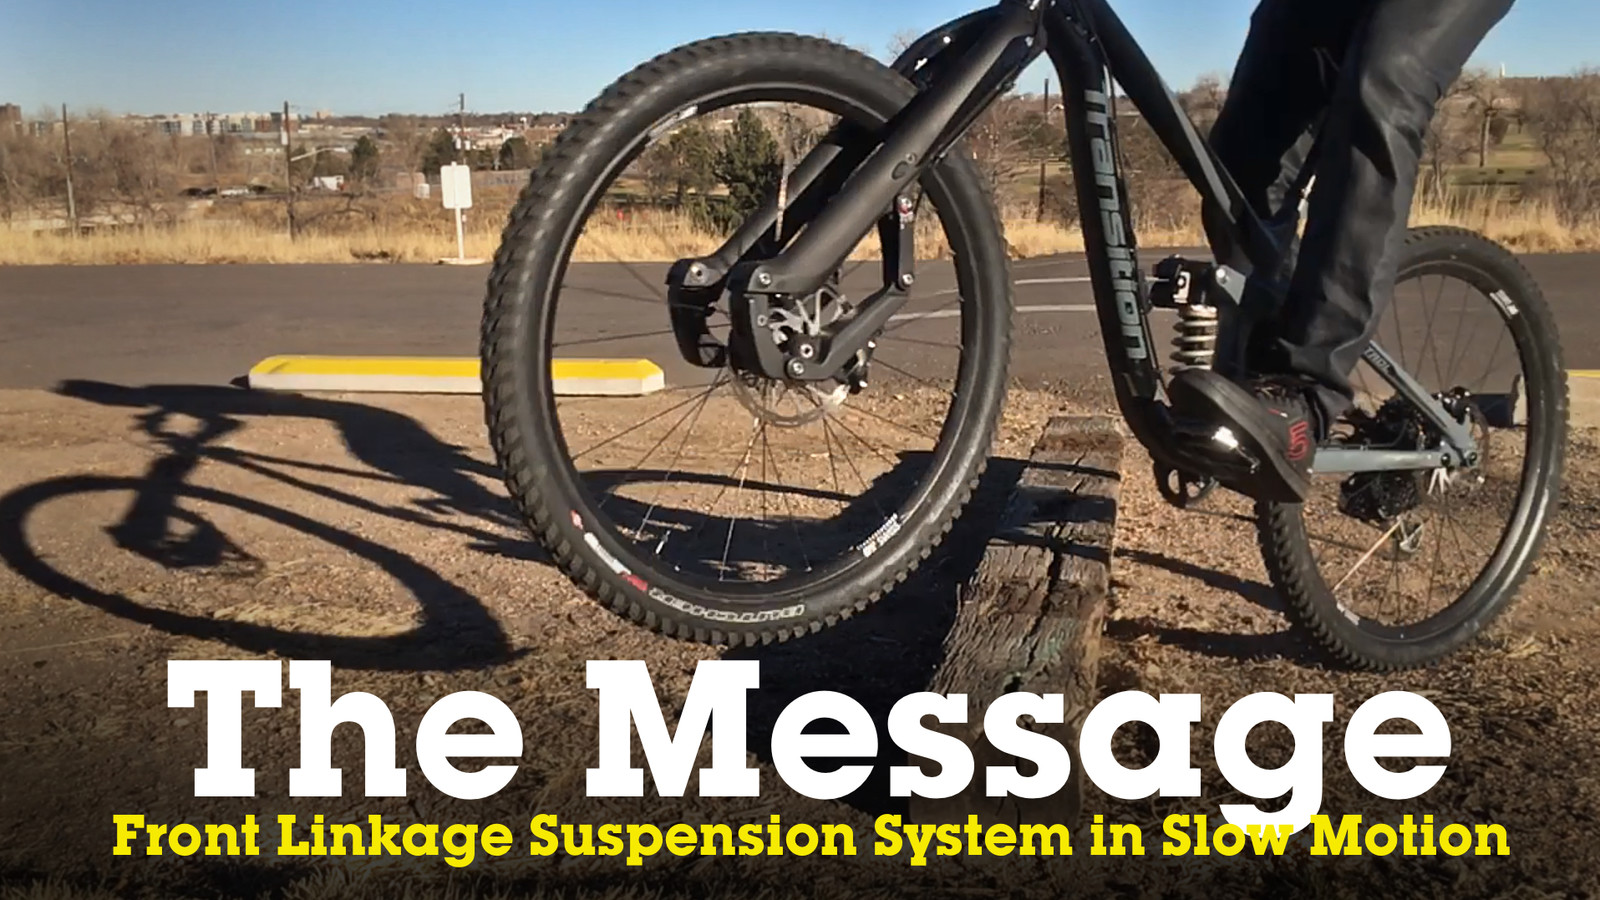 Slow Motion Action of The Message Front Linkage Suspension System